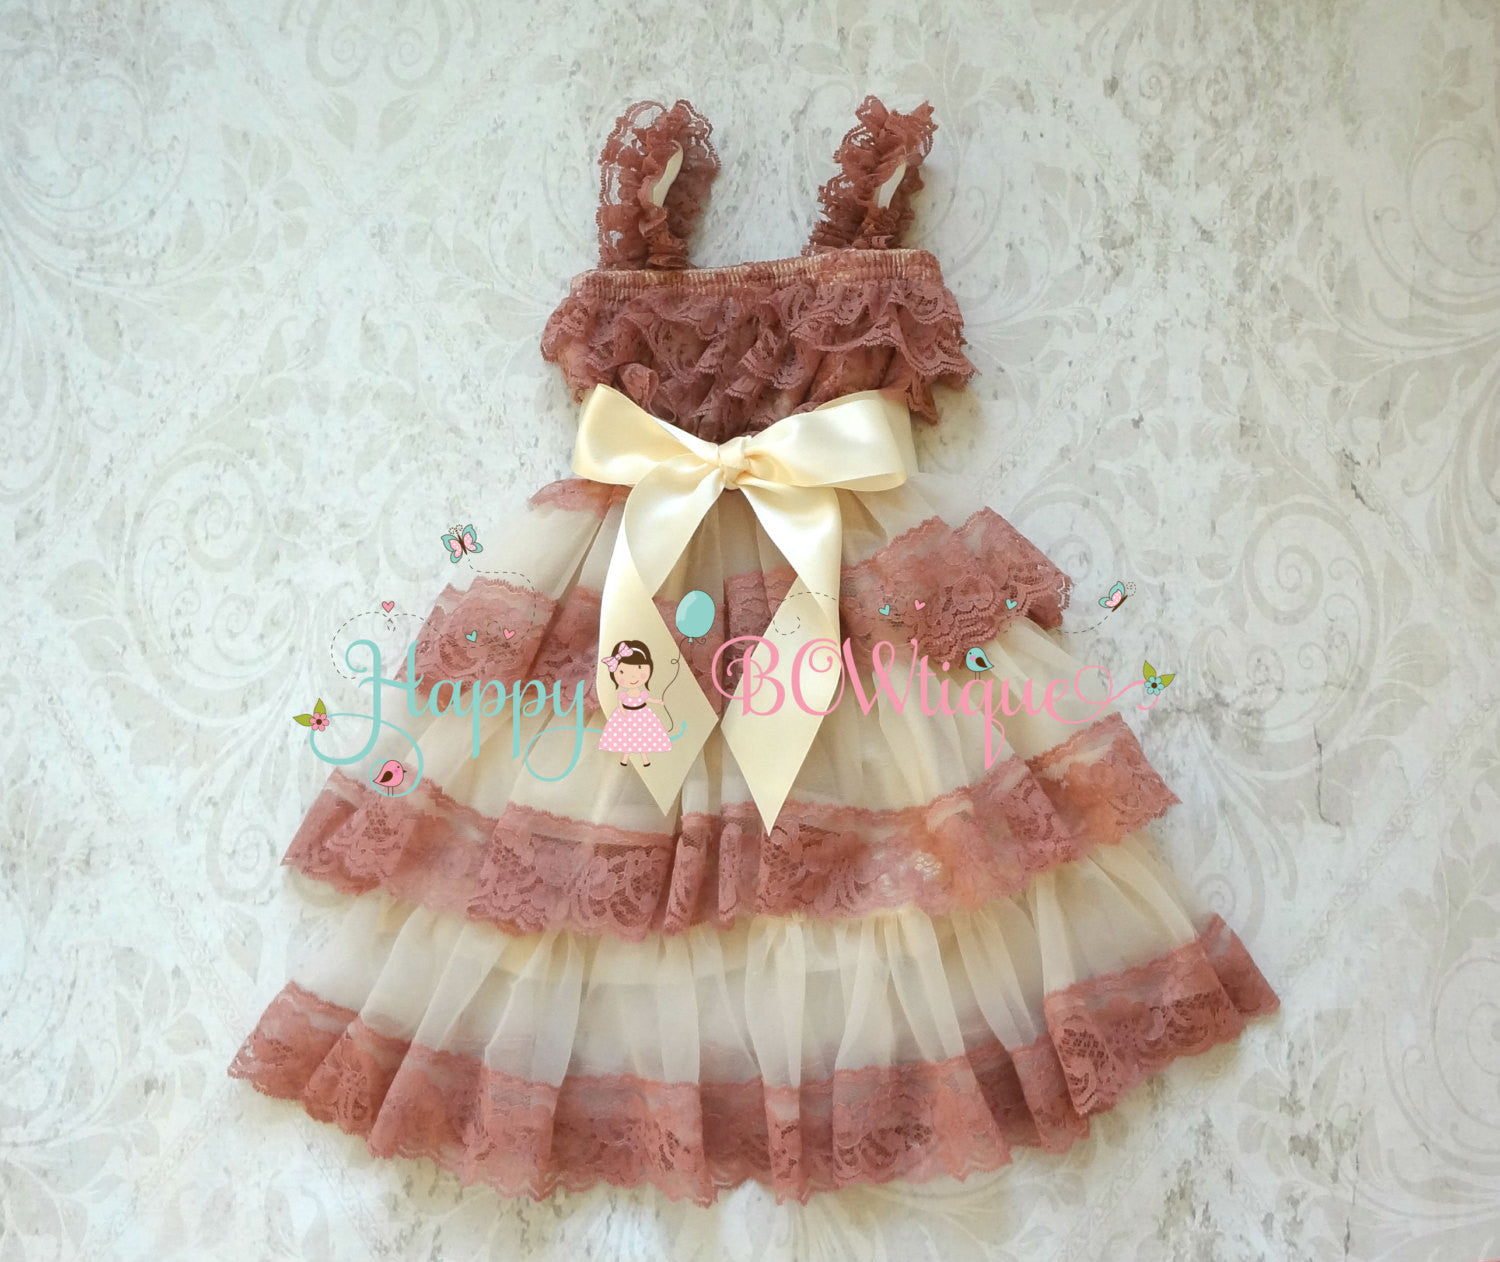 Champagne Rose Chiffon Tier Lace Dress - Happy BOWtique - children's clothing, Baby Girl clothing